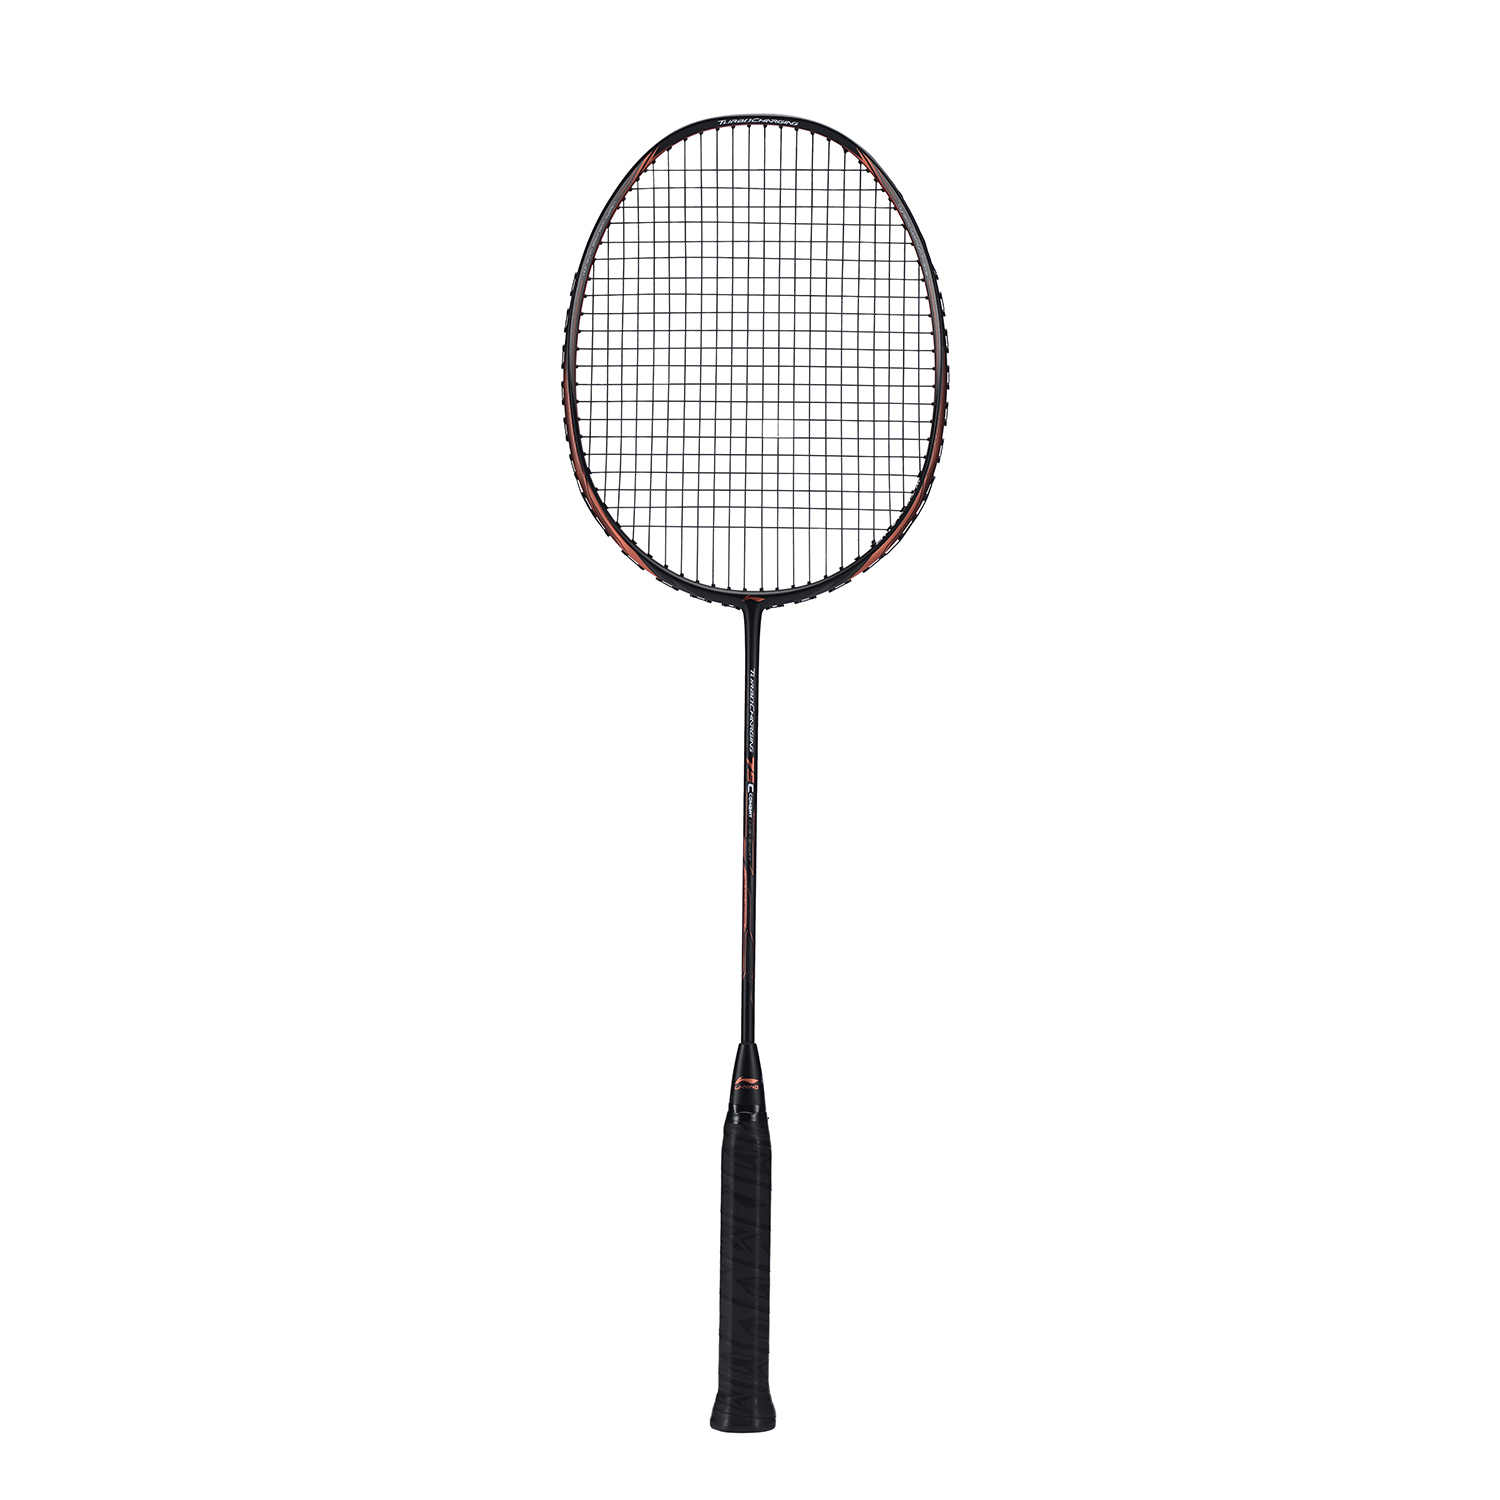 2019 New Li-Ning Badminton Racket Aeronaut 7000 MPCE Reinforcing Technology Badminton Raquete With Free Grip